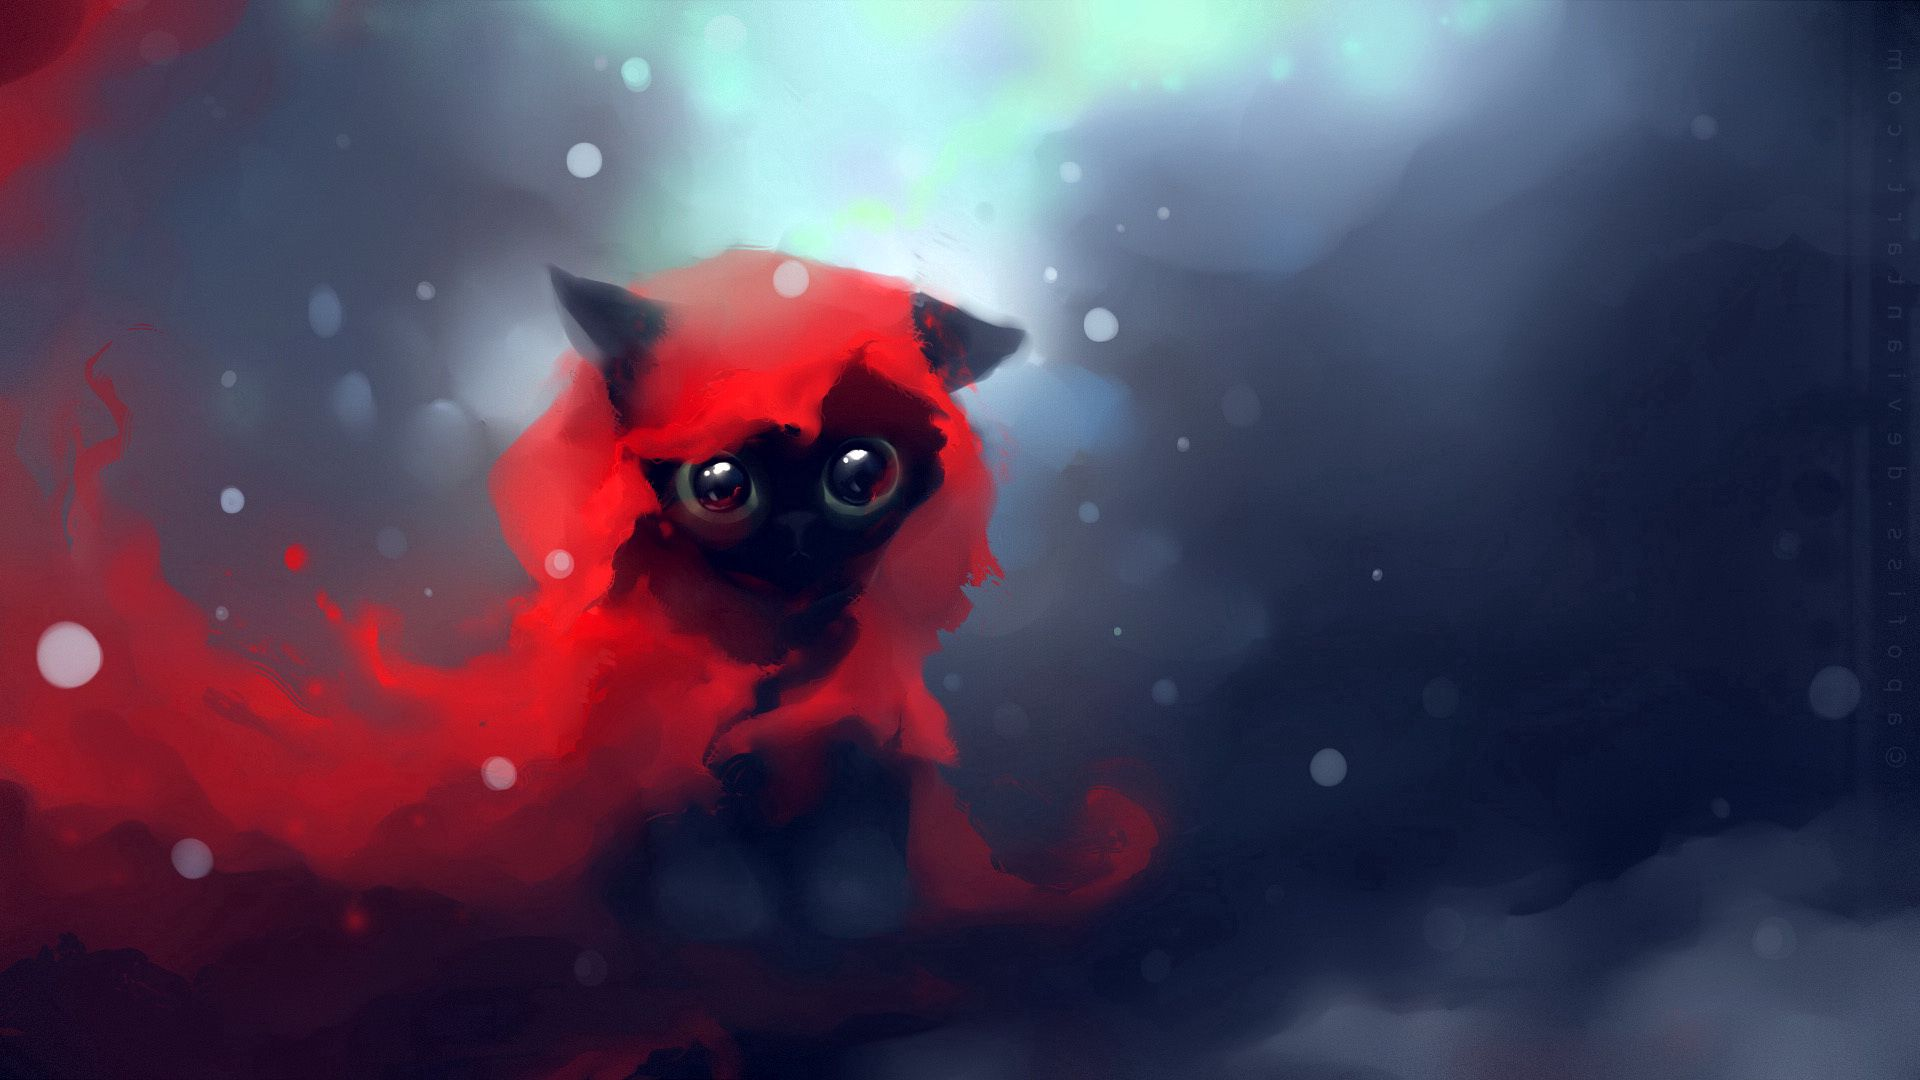 56497 download wallpaper Cat, Picture, Drawing, Art, Apofiss screensavers and pictures for free